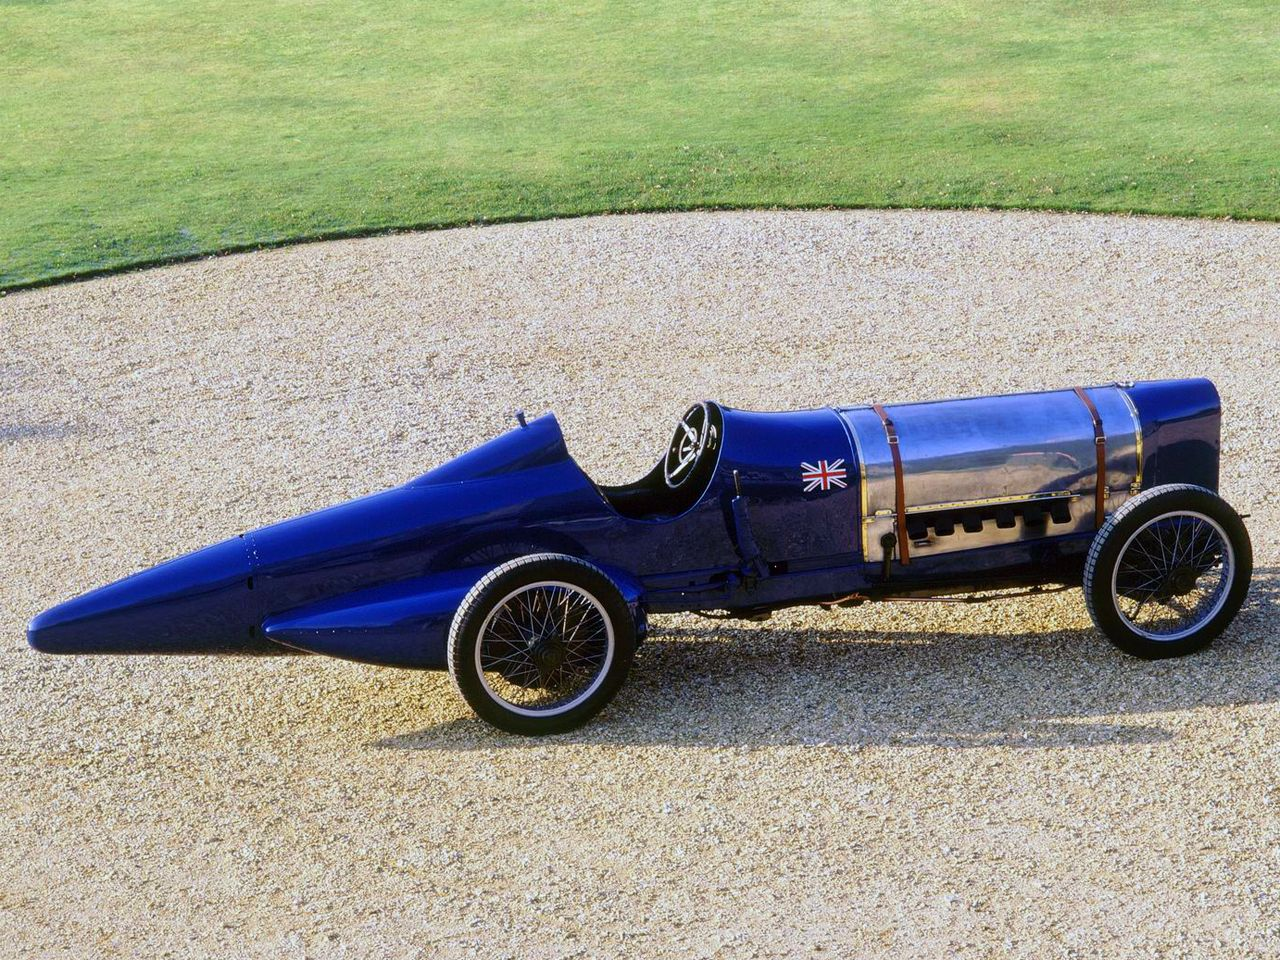 1925 sunbeam bluebird land speed record car wasn t this malcolm campbell s rocket